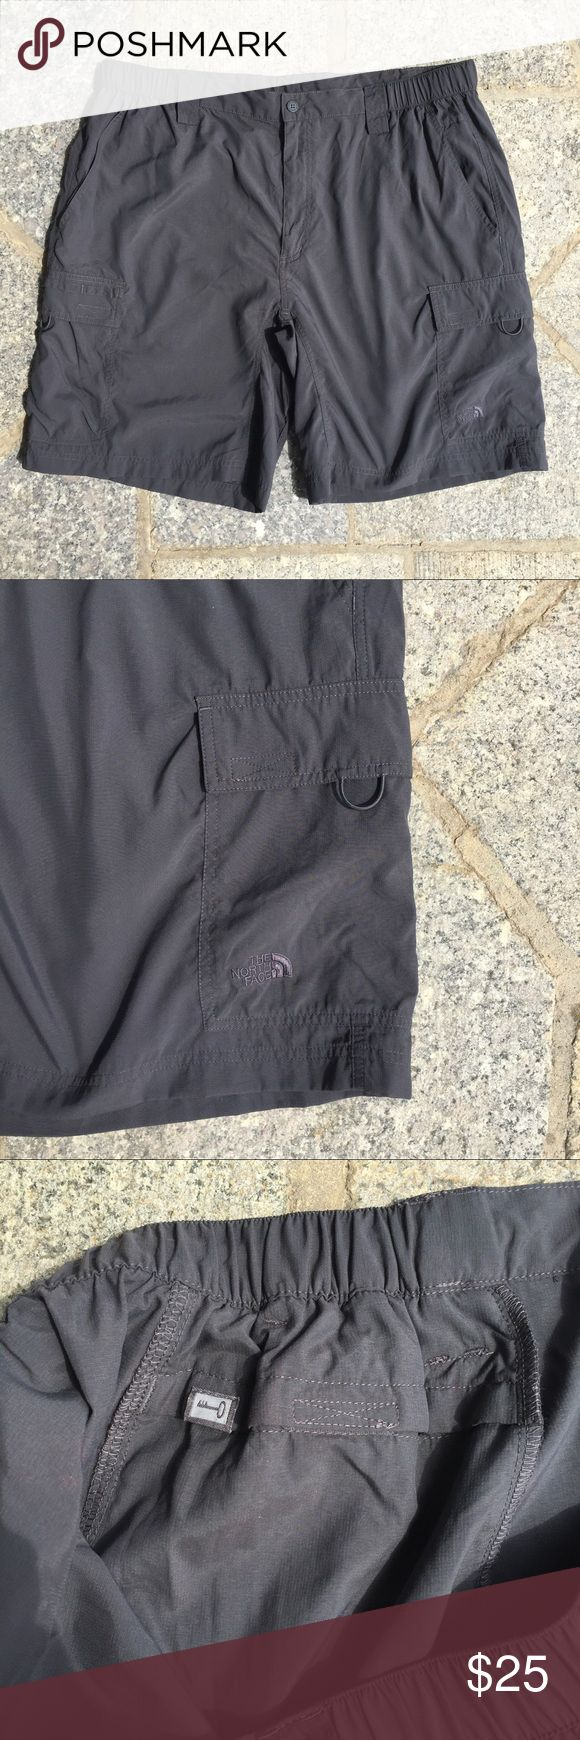 The North Face Men's XXL Gray Shorts The North Face Men's XXL Gray Shorts.   The perfect condition!!! The North Face Shorts